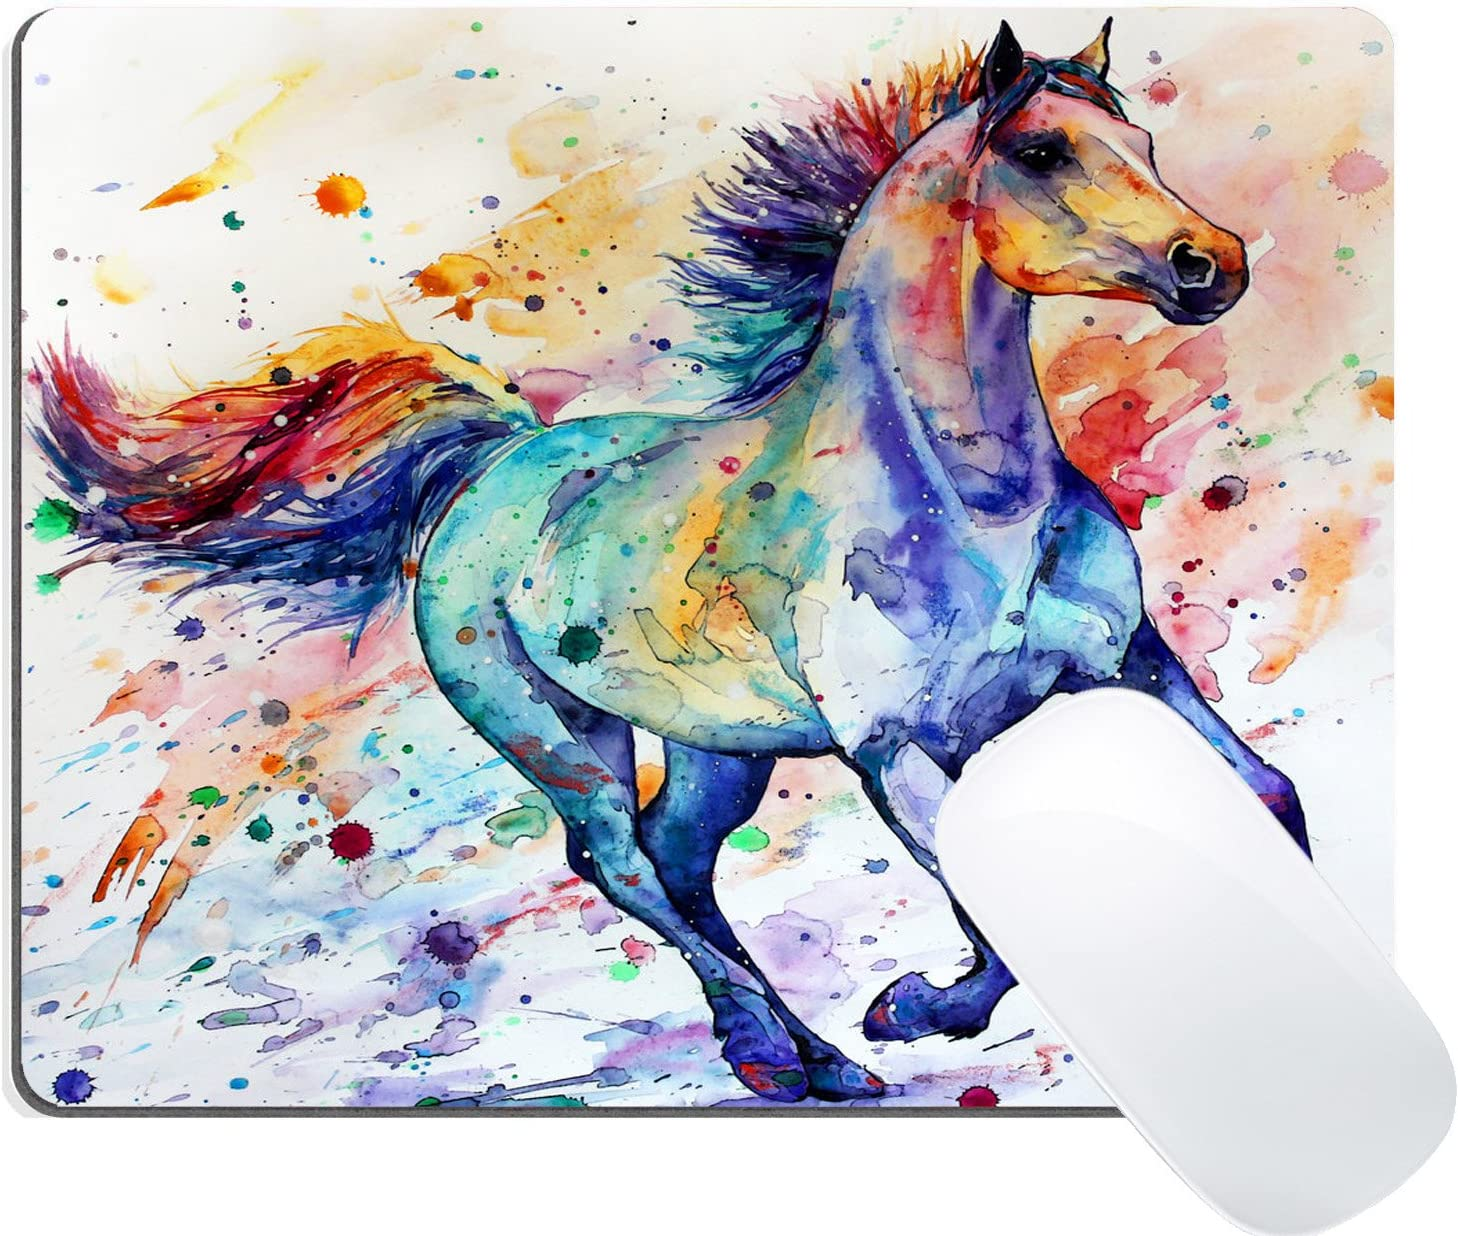 Watercolor Running Horse Painting Art Wknoon Gaming Mouse Pad Custom Design Mat